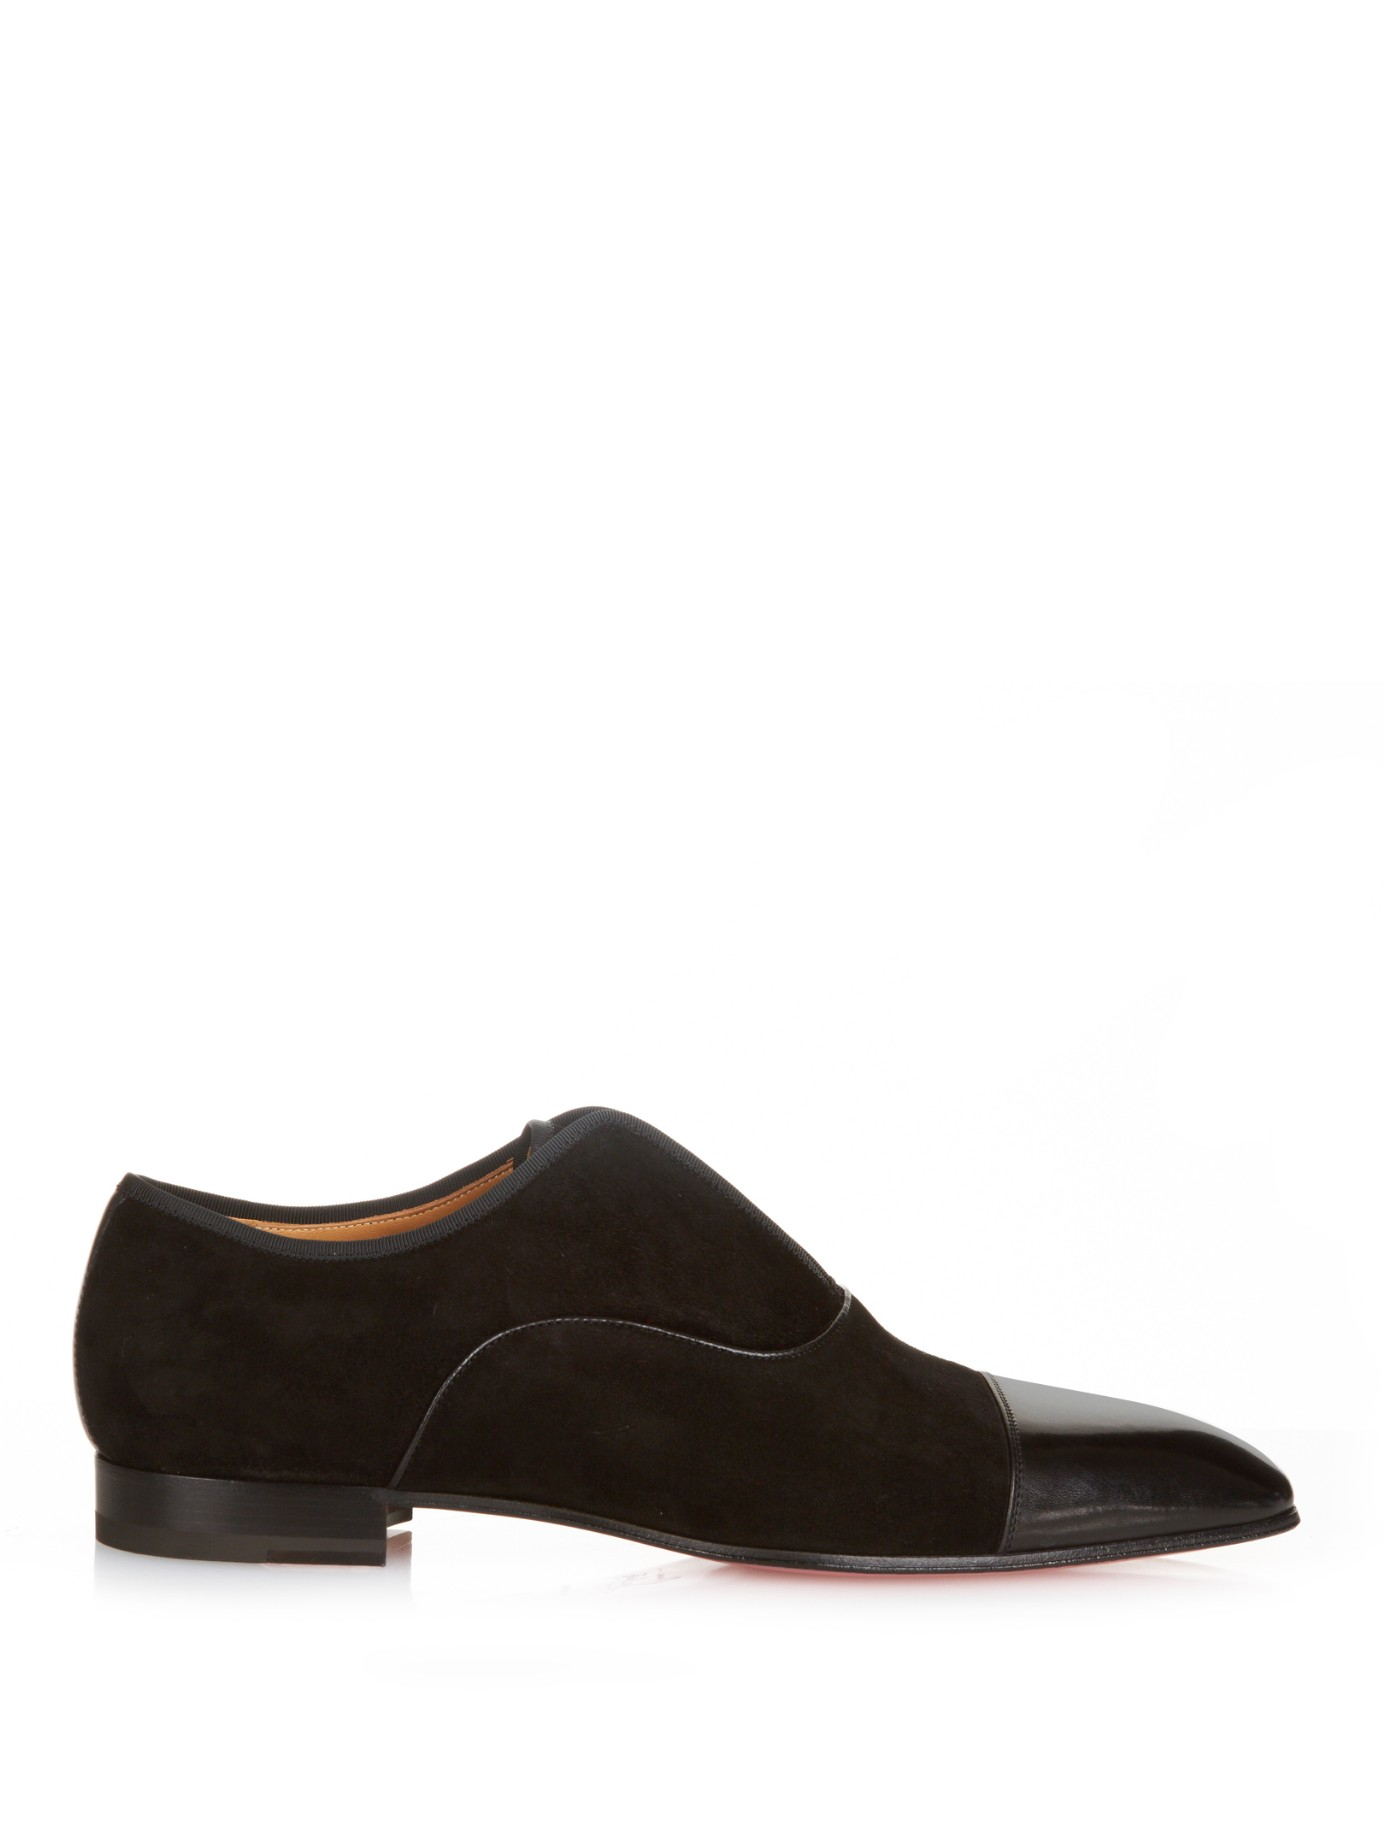 christian louboutin suede loafers | The Filipino Language School ...